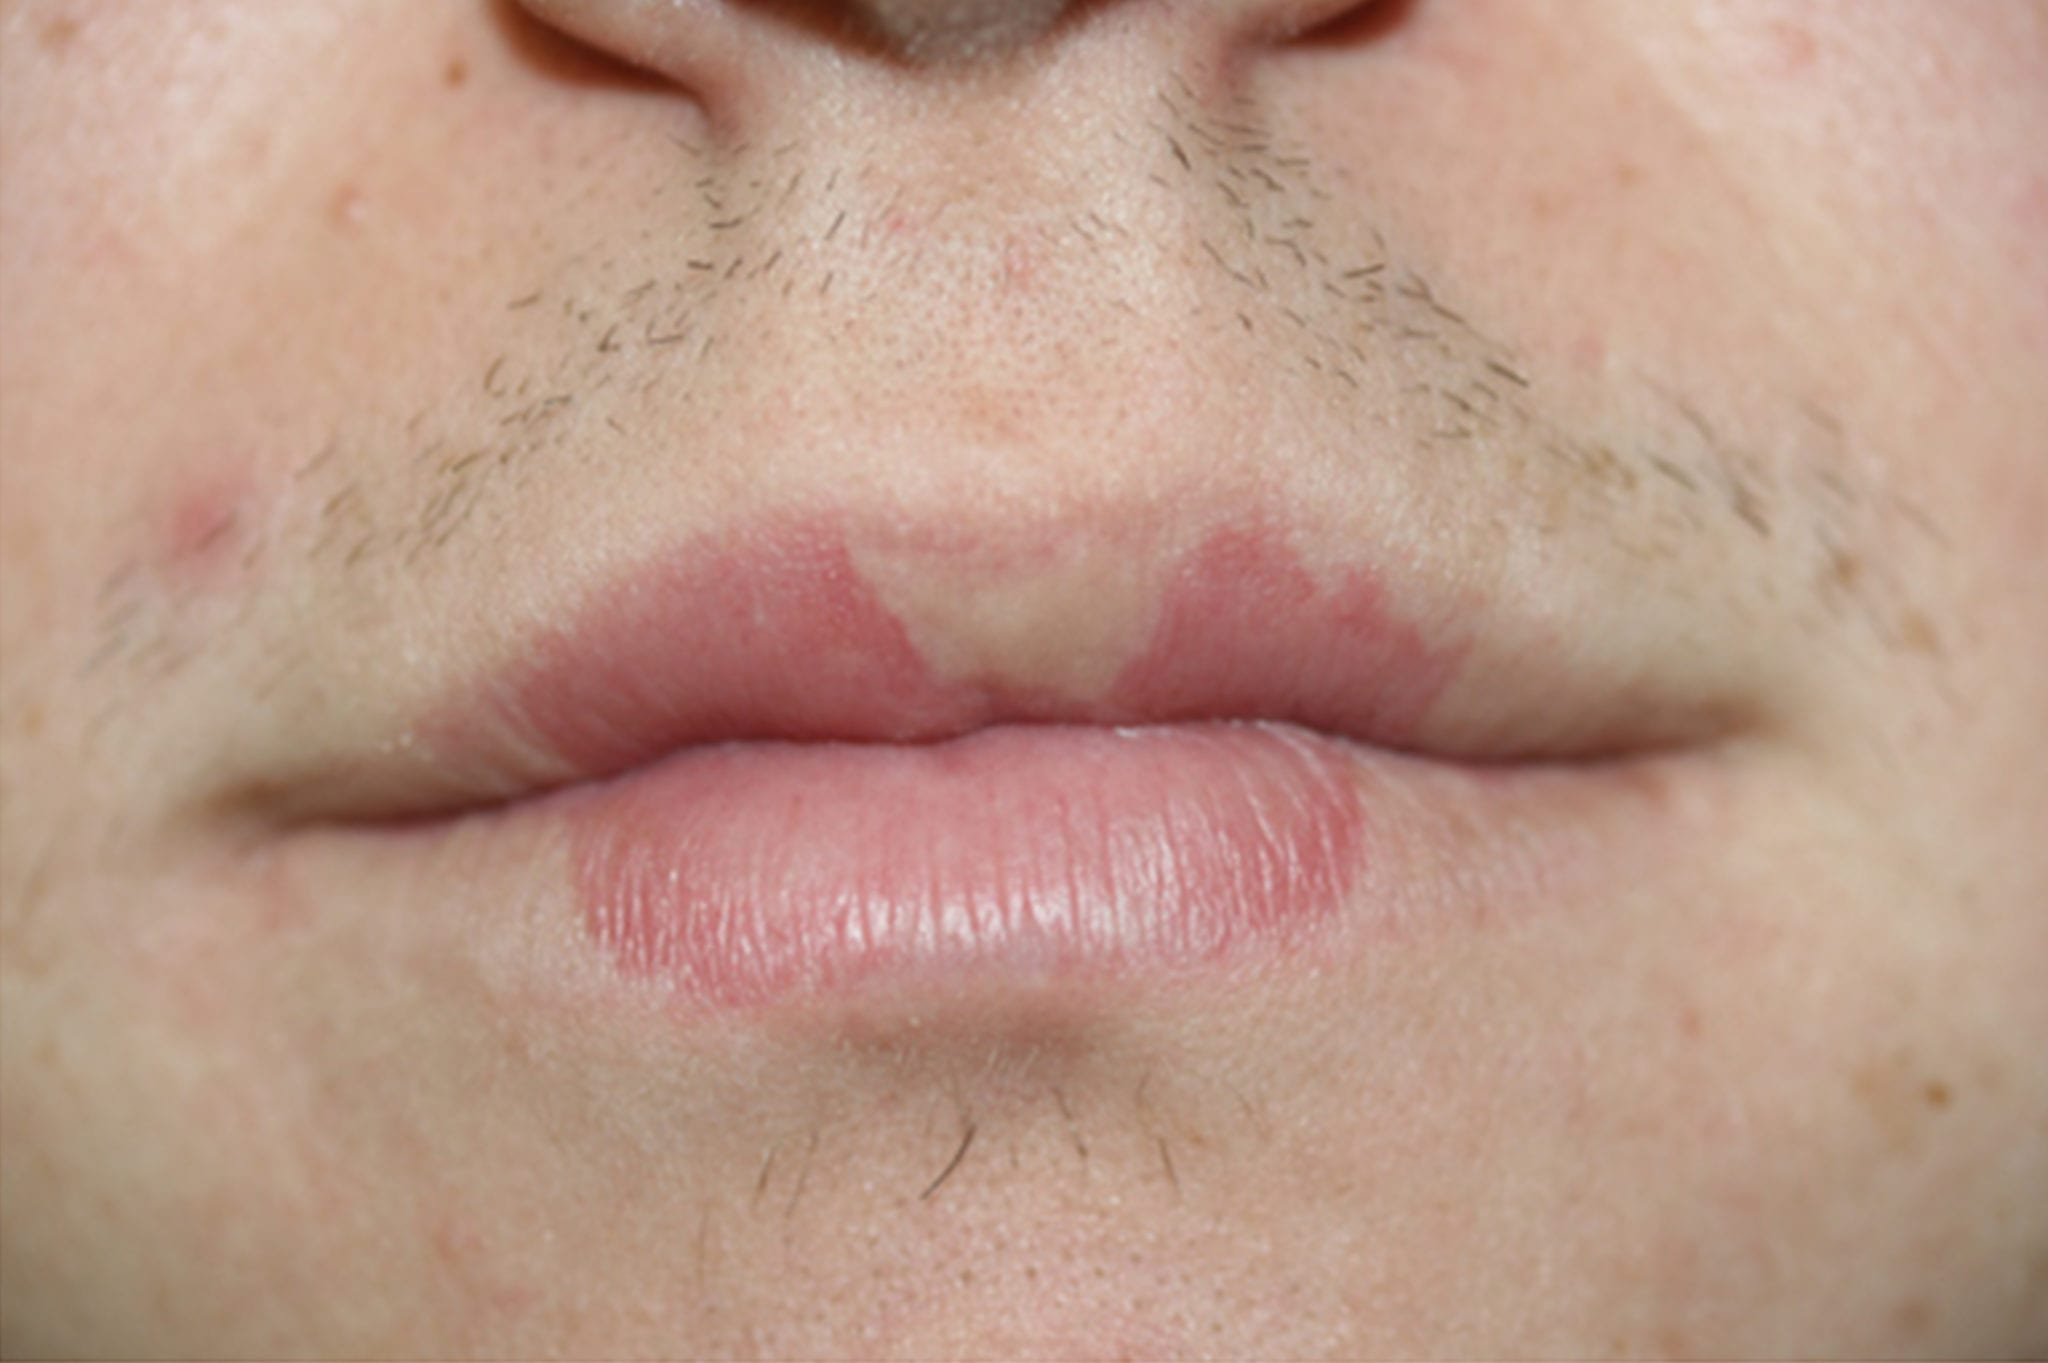 Lip-discoloration